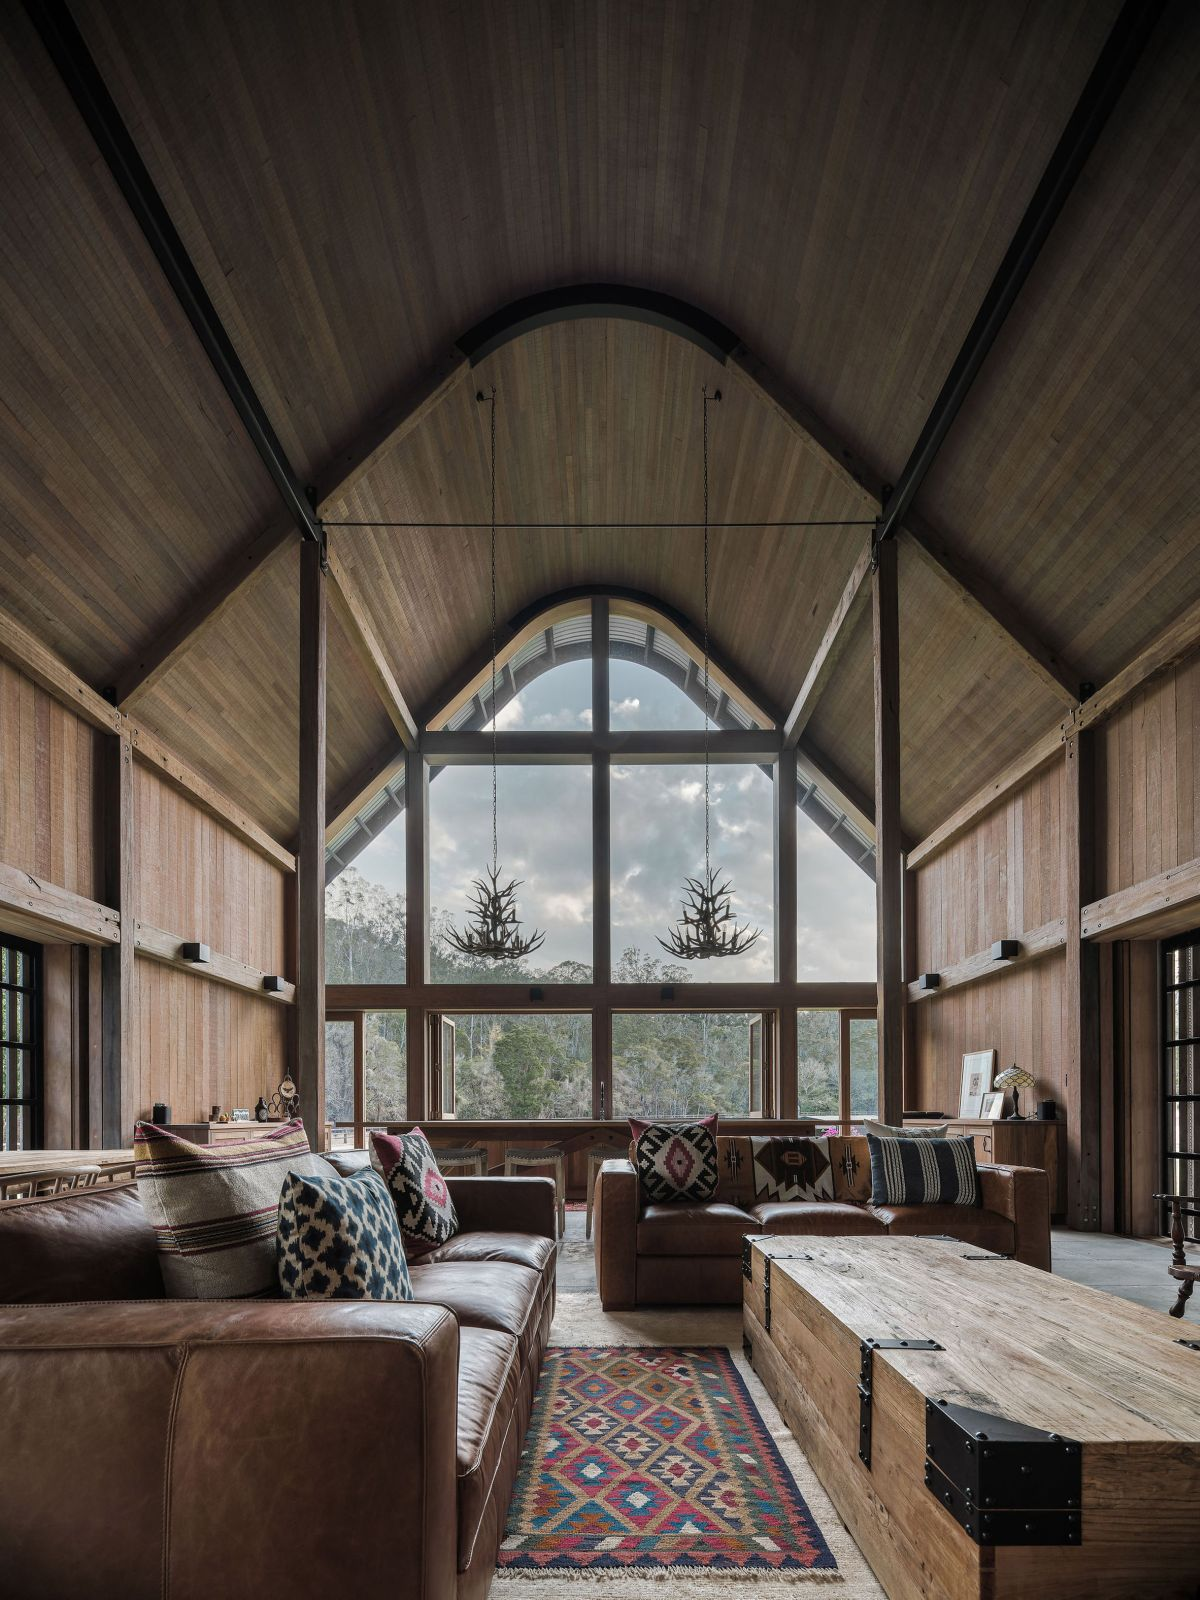 The interior design has strong rustic vibes and maintains a very simple and earthy color palette